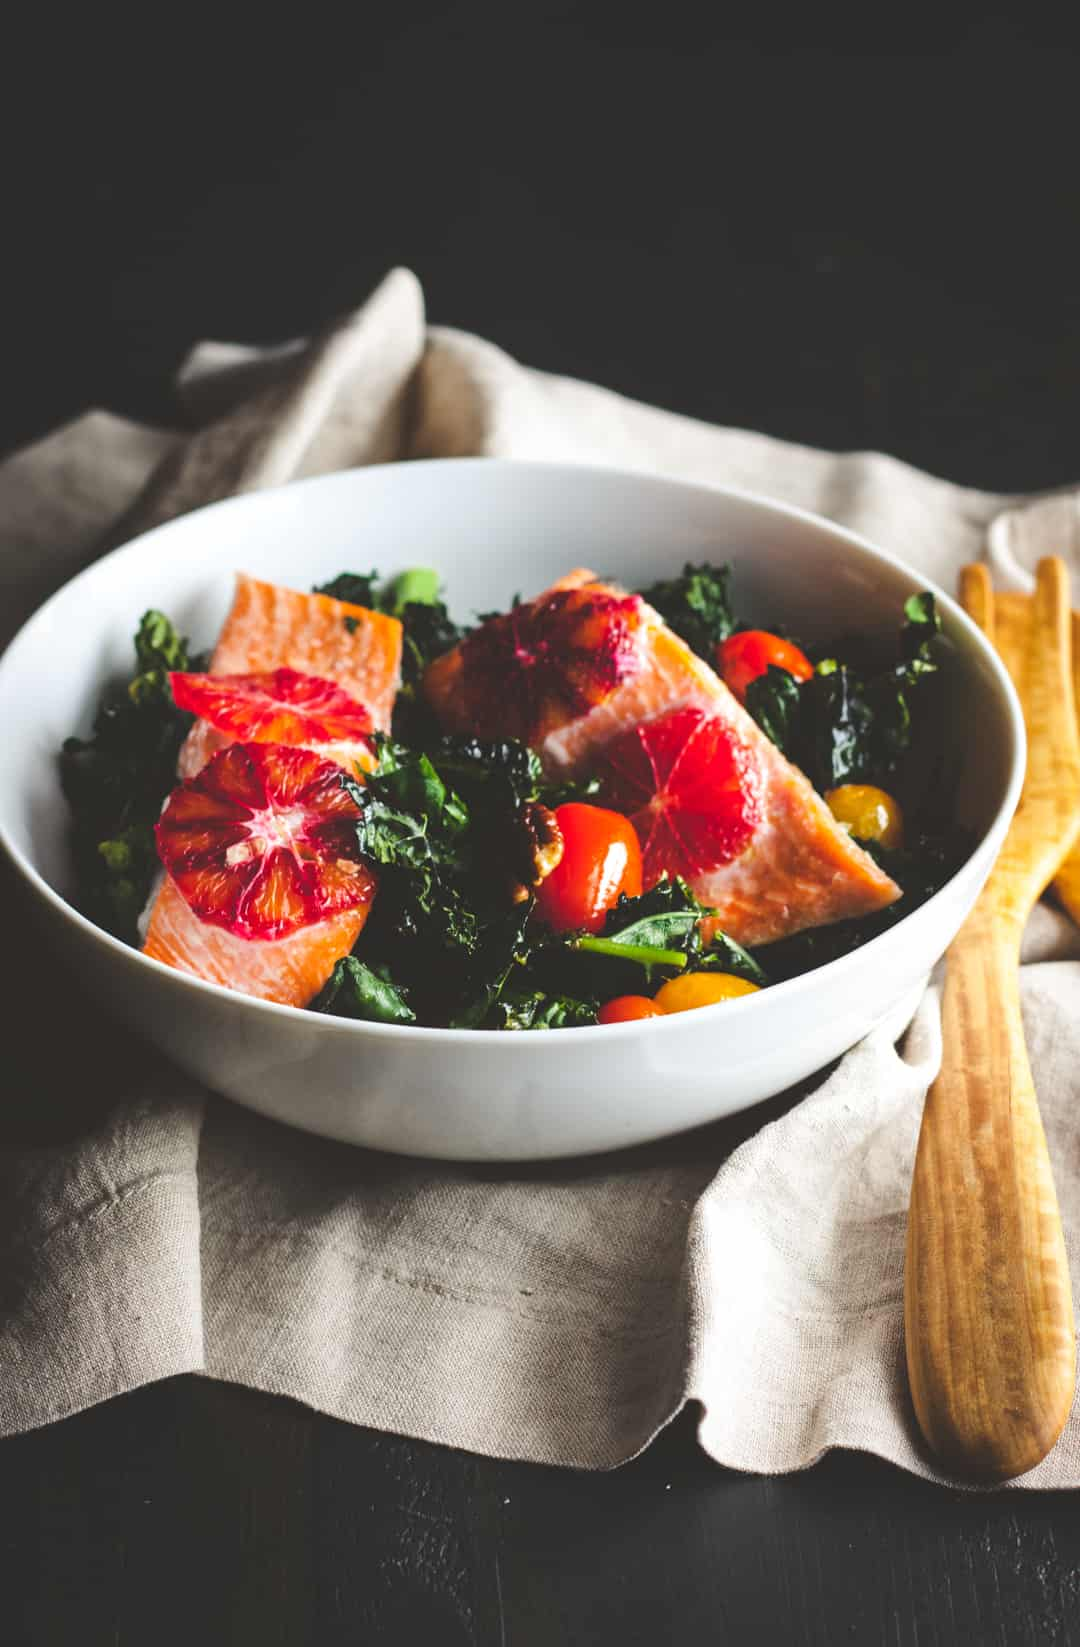 The best recipe ever for a kale and salmon salad